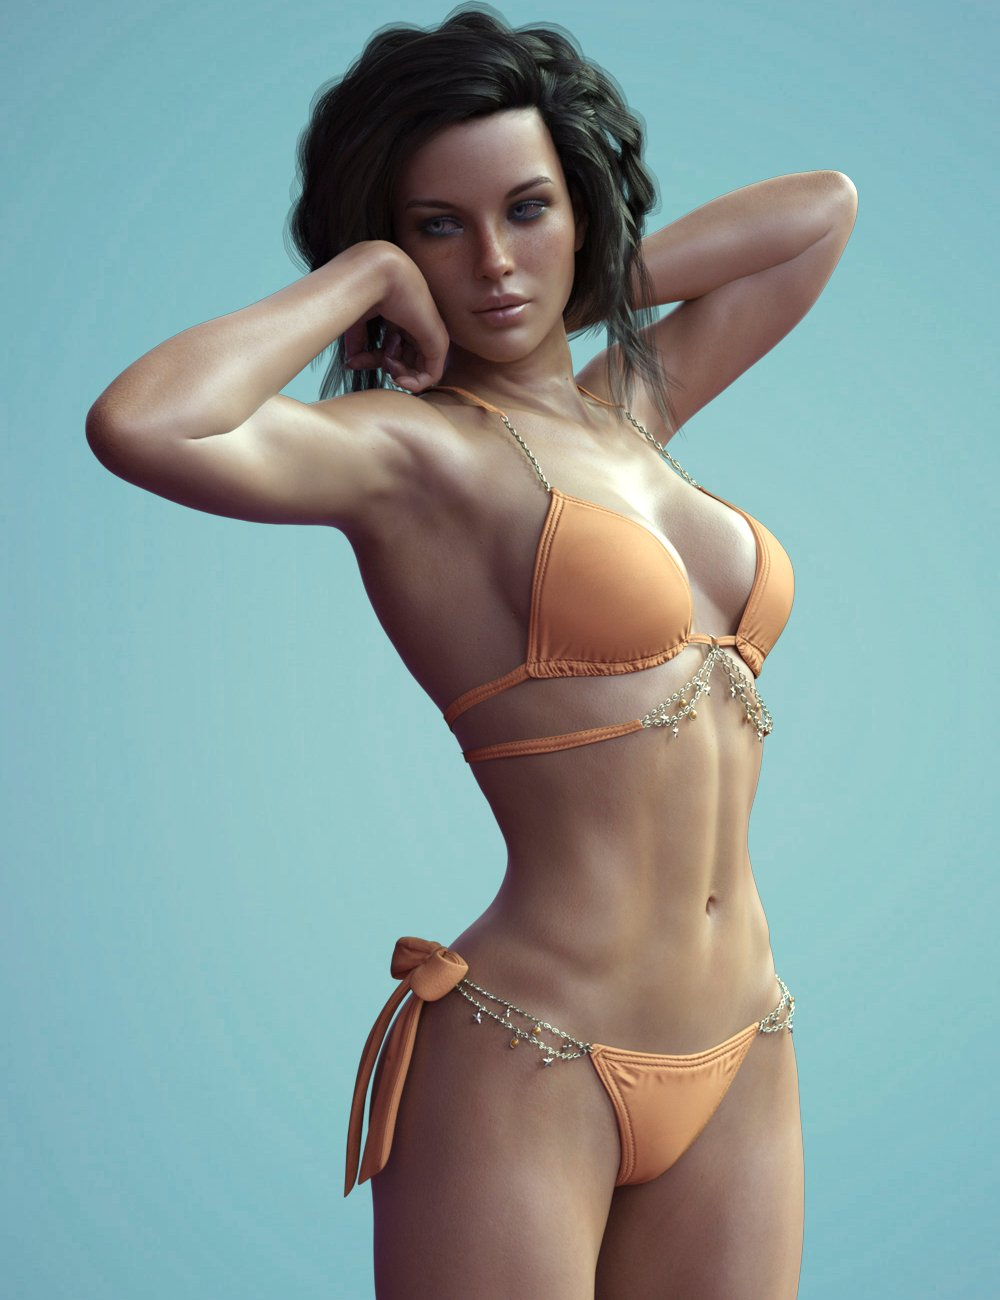 X-Fashion Chic Bikini for Genesis 8 Female(s) by: xtrart-3d, 3D Models by Daz 3D